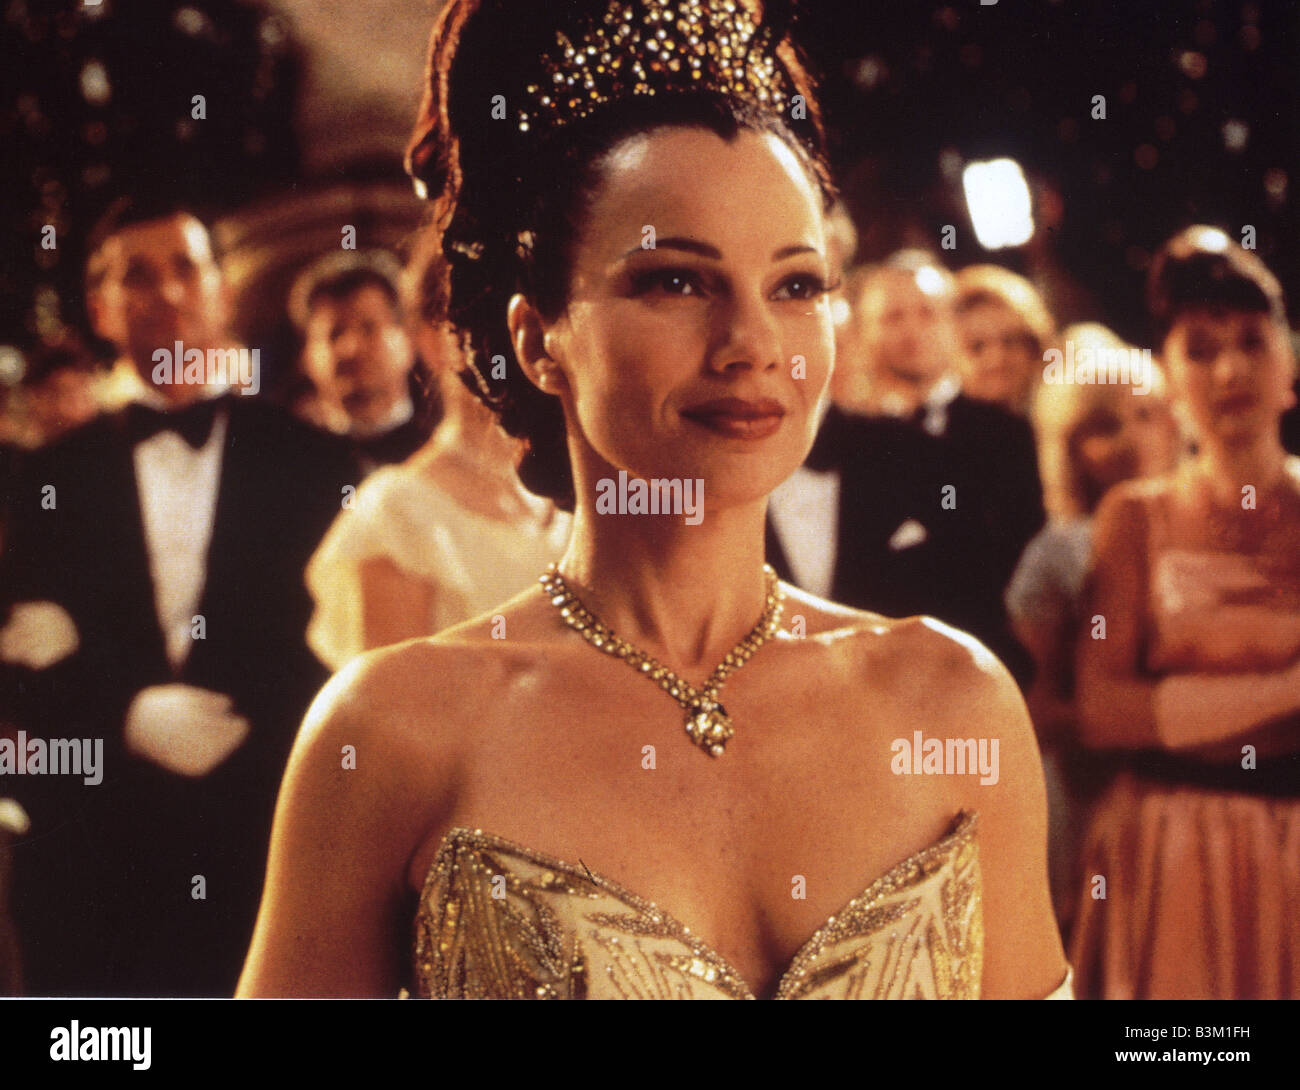 Fran drescher movie